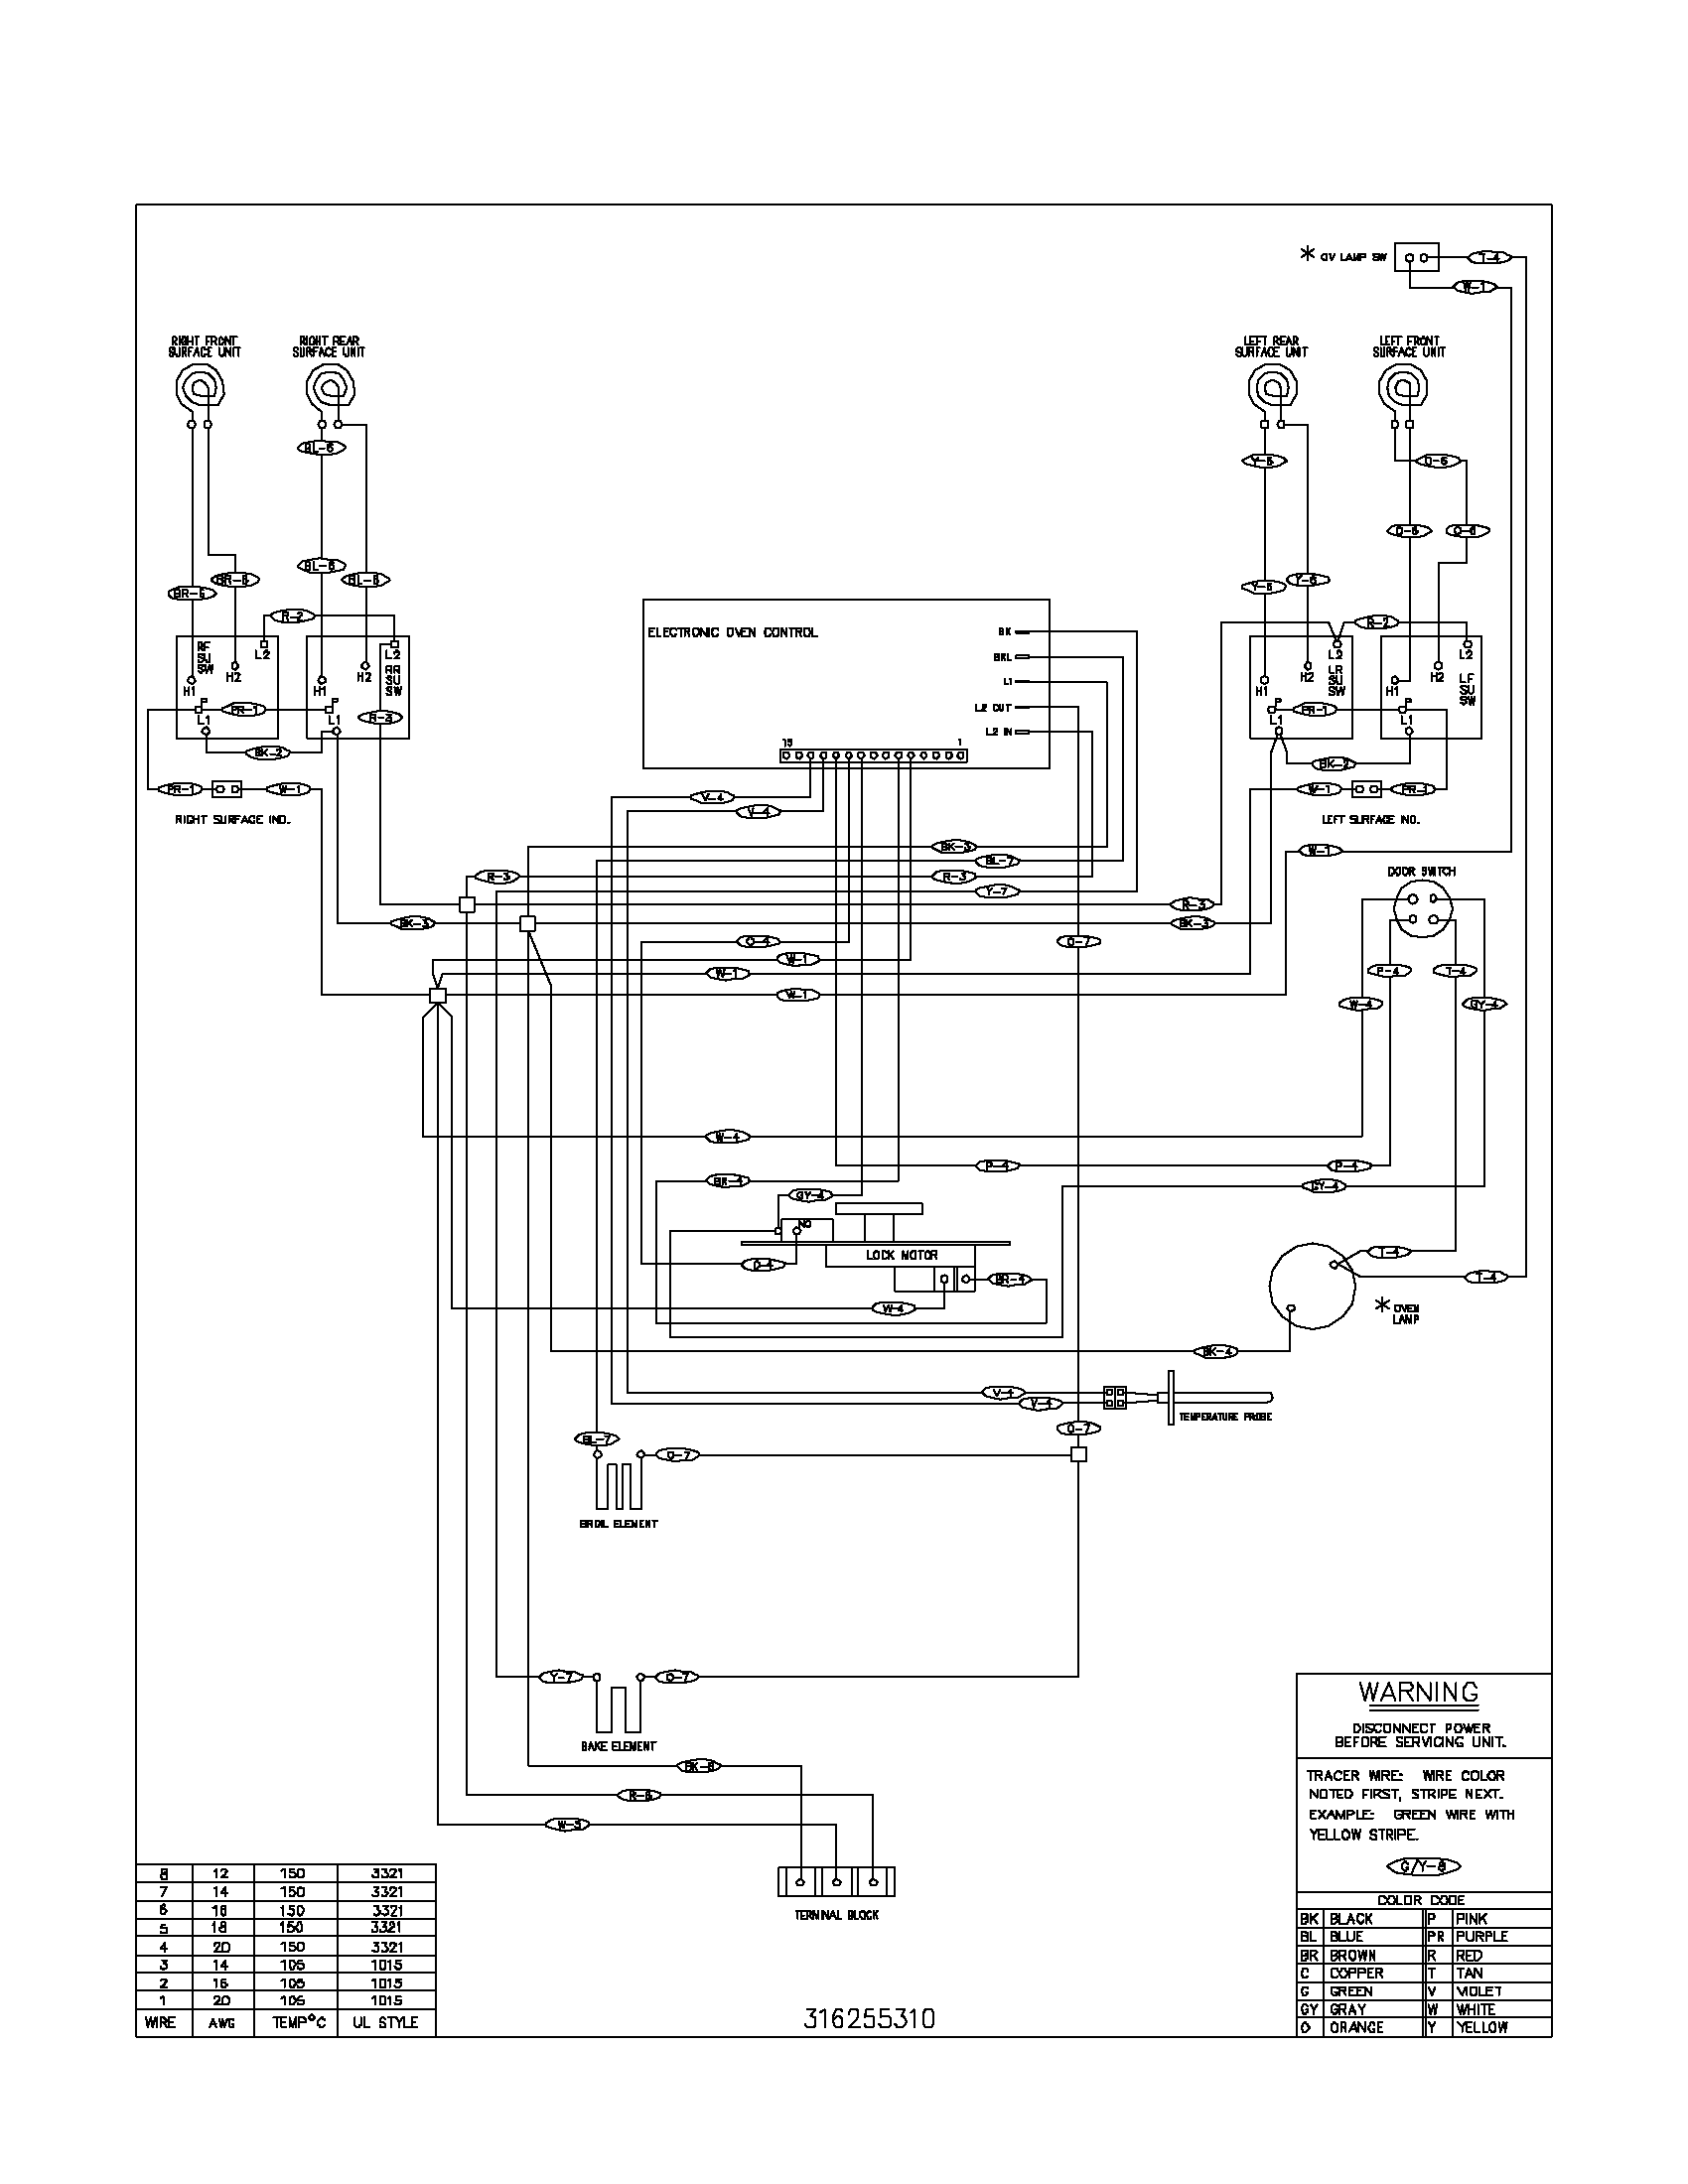 wiring diagram parts wiring diagram for frigidaire dryer the wiring diagram wiring diagram for gler341as2 at edmiracle.co